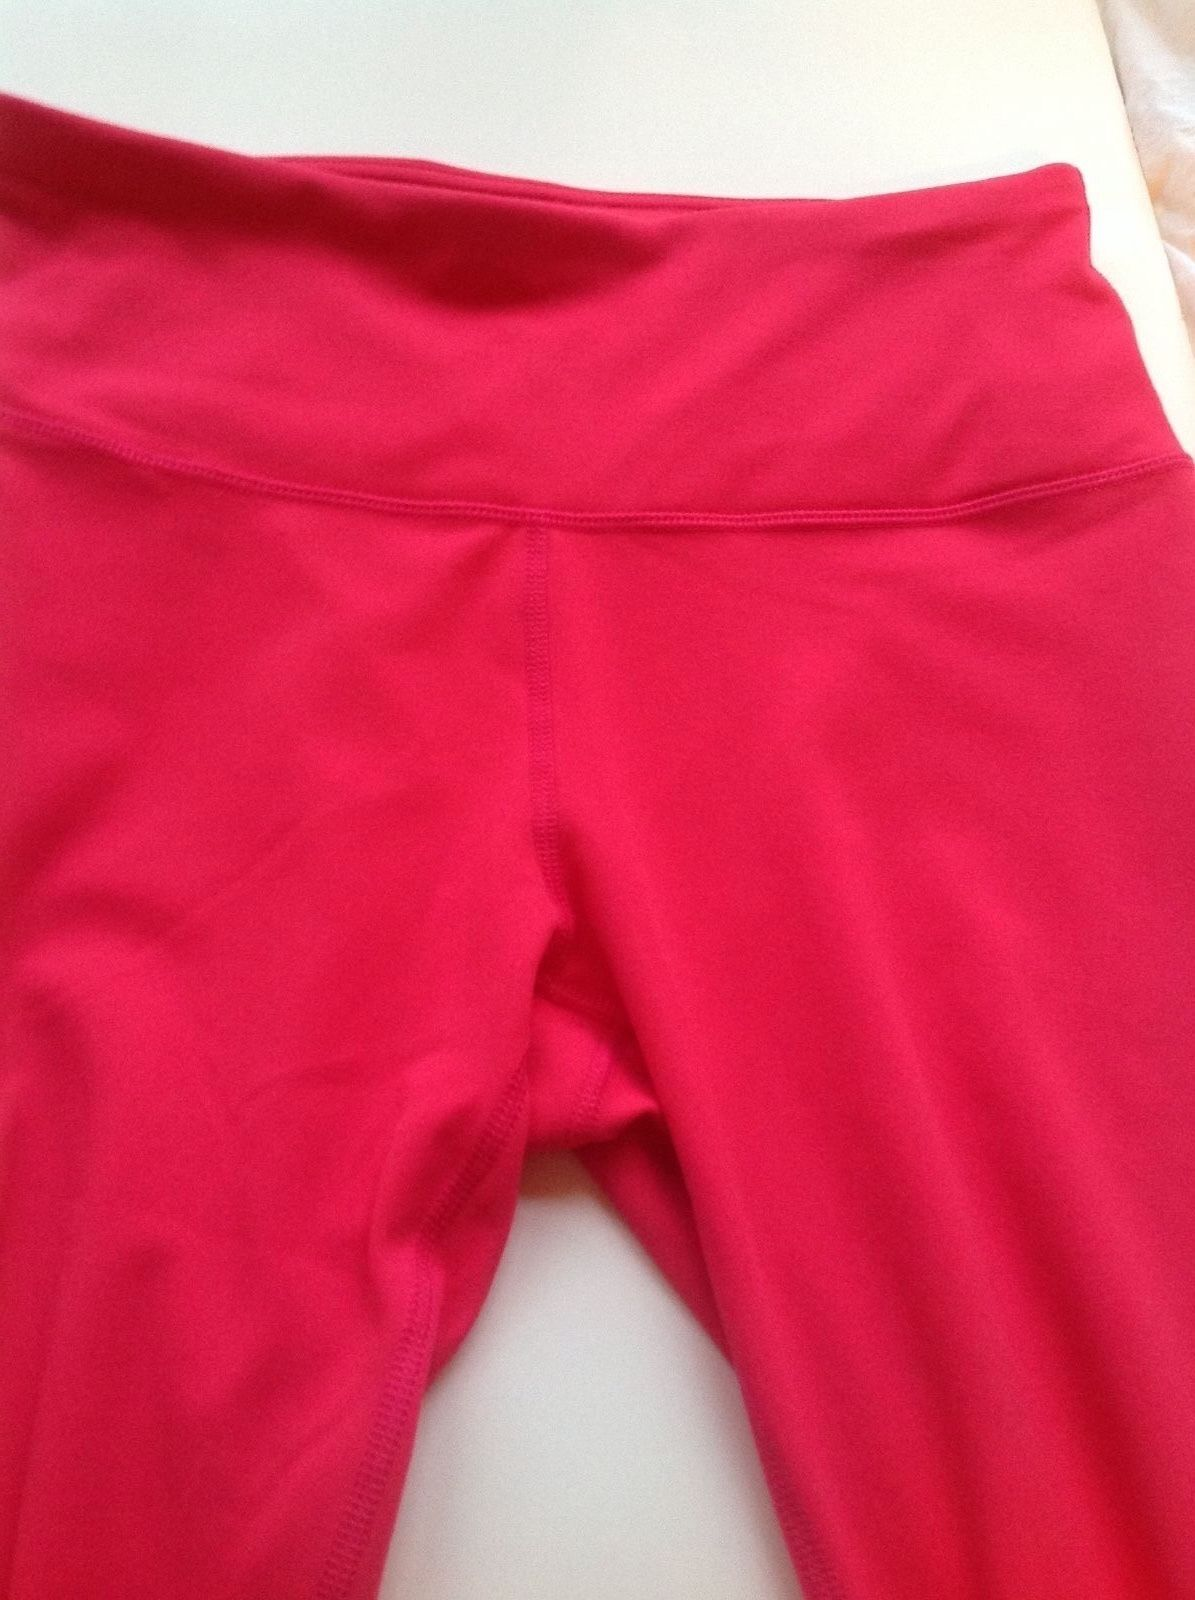 Exercise stretchy Yoga Rosa Large pants